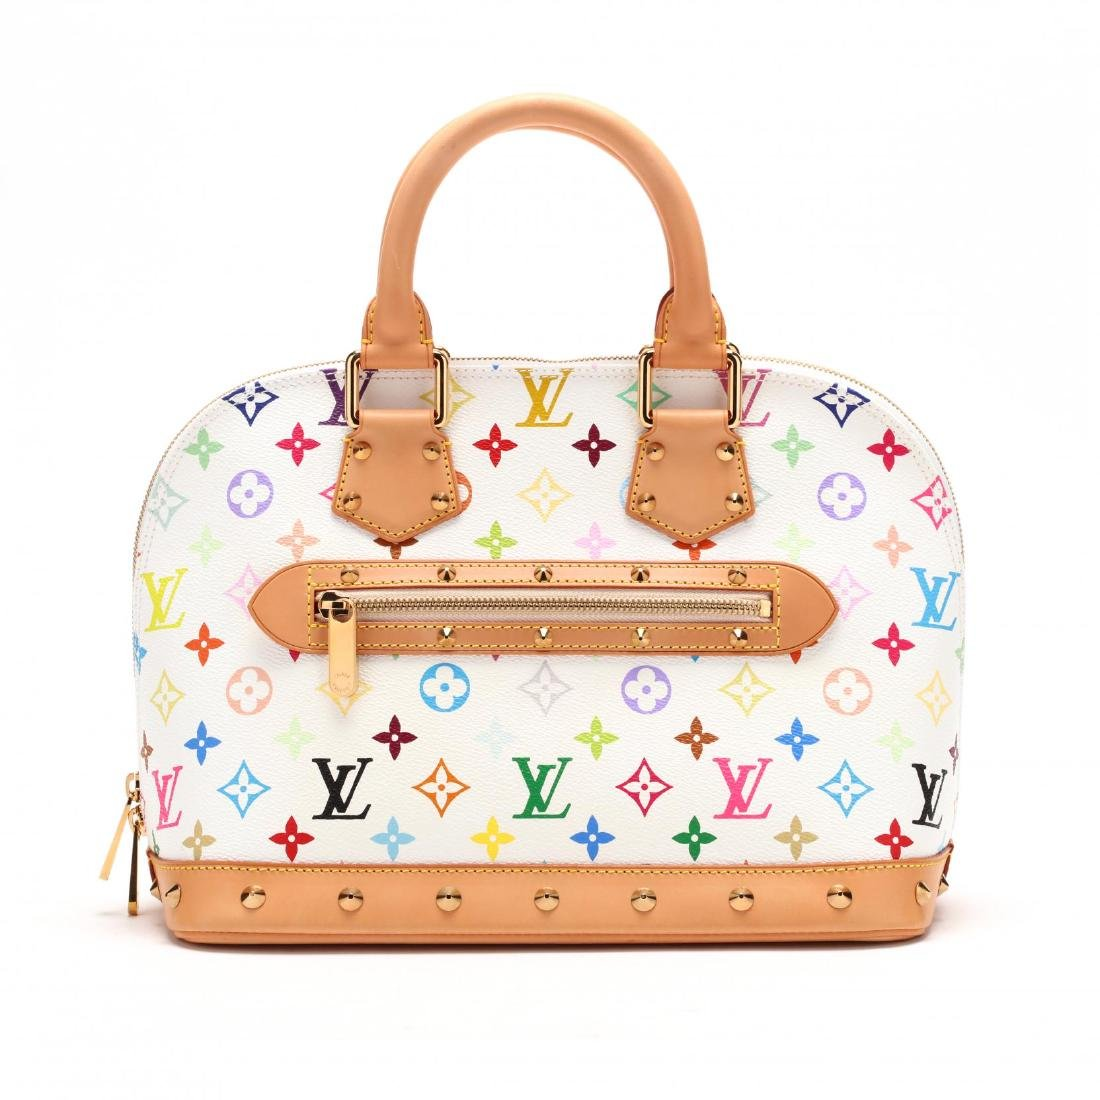 White Multicolore  Alma,  Handbag, Louis Vuitton